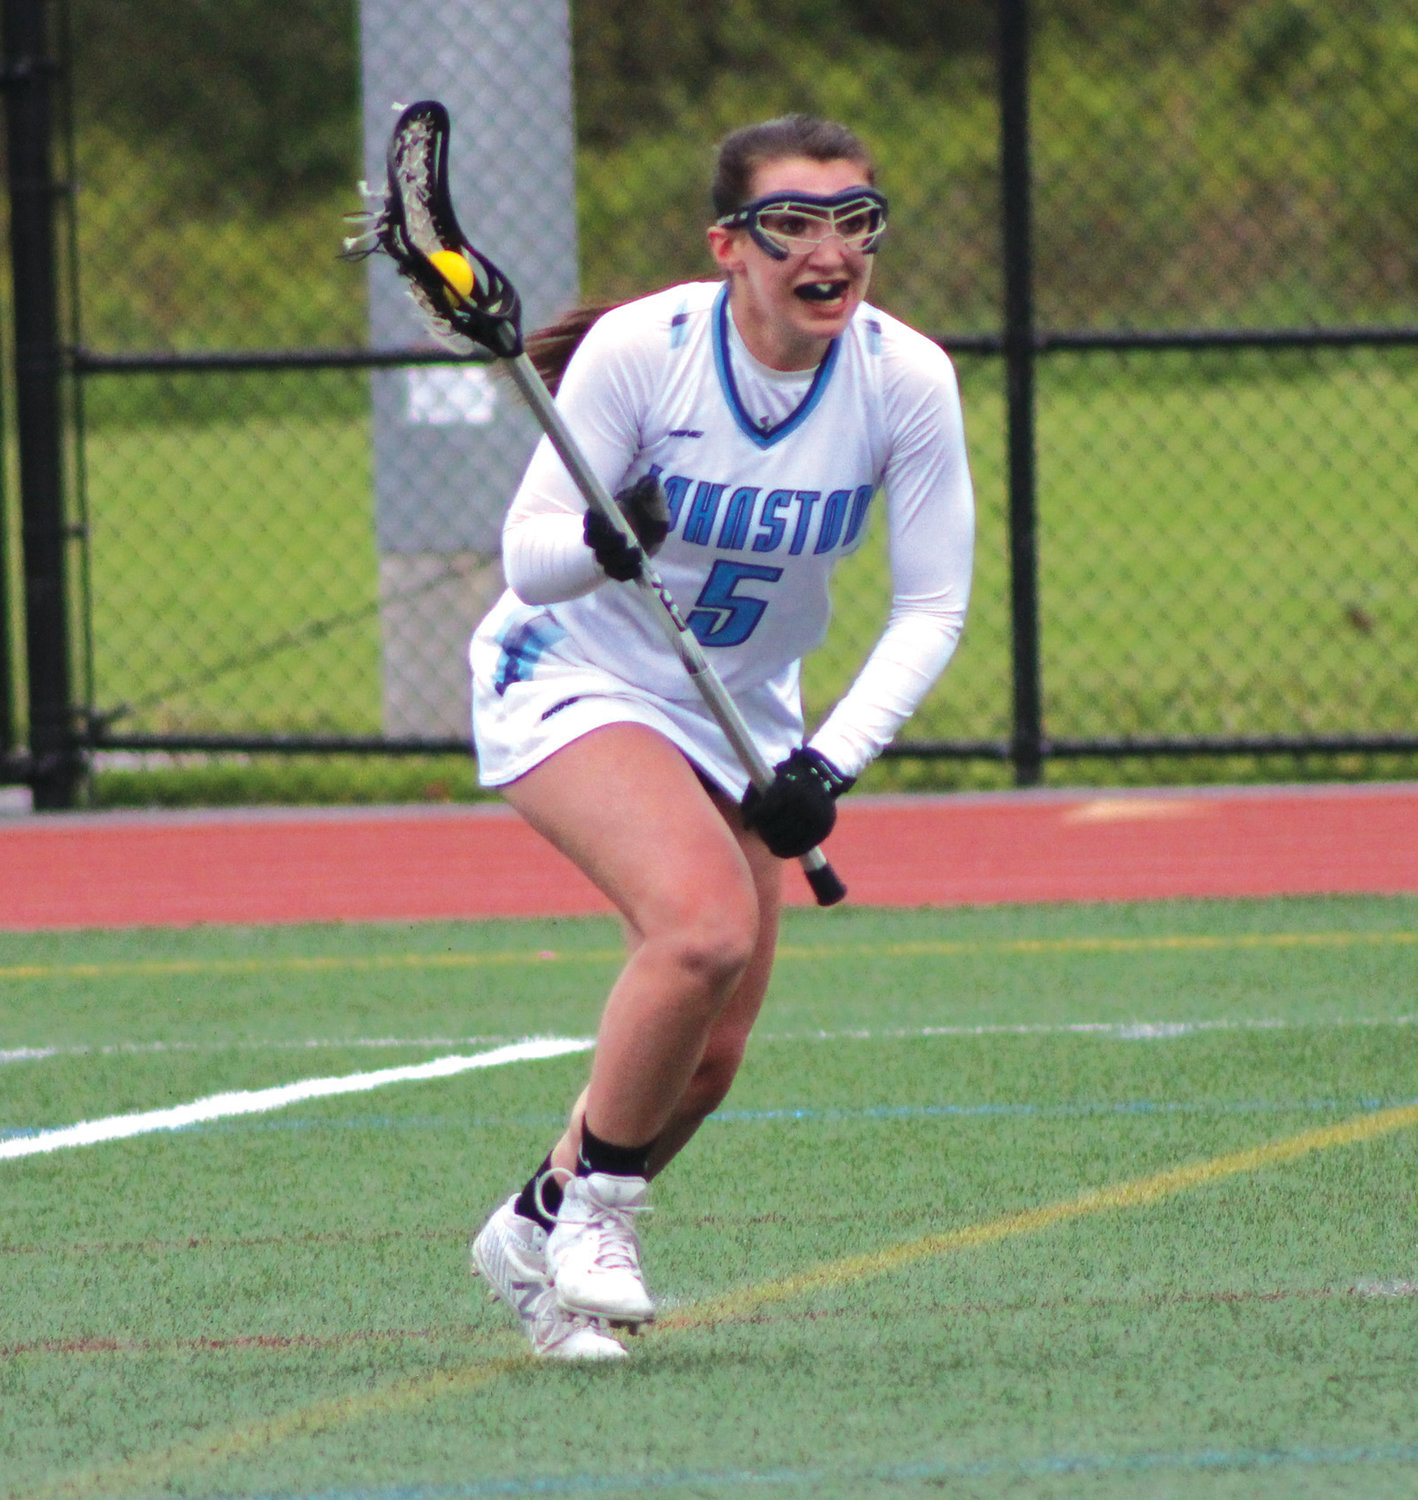 UP THE FIELD: Johnston girls lacrosse captain Gabby DiRaimo carries the ball up the field against Westerly.